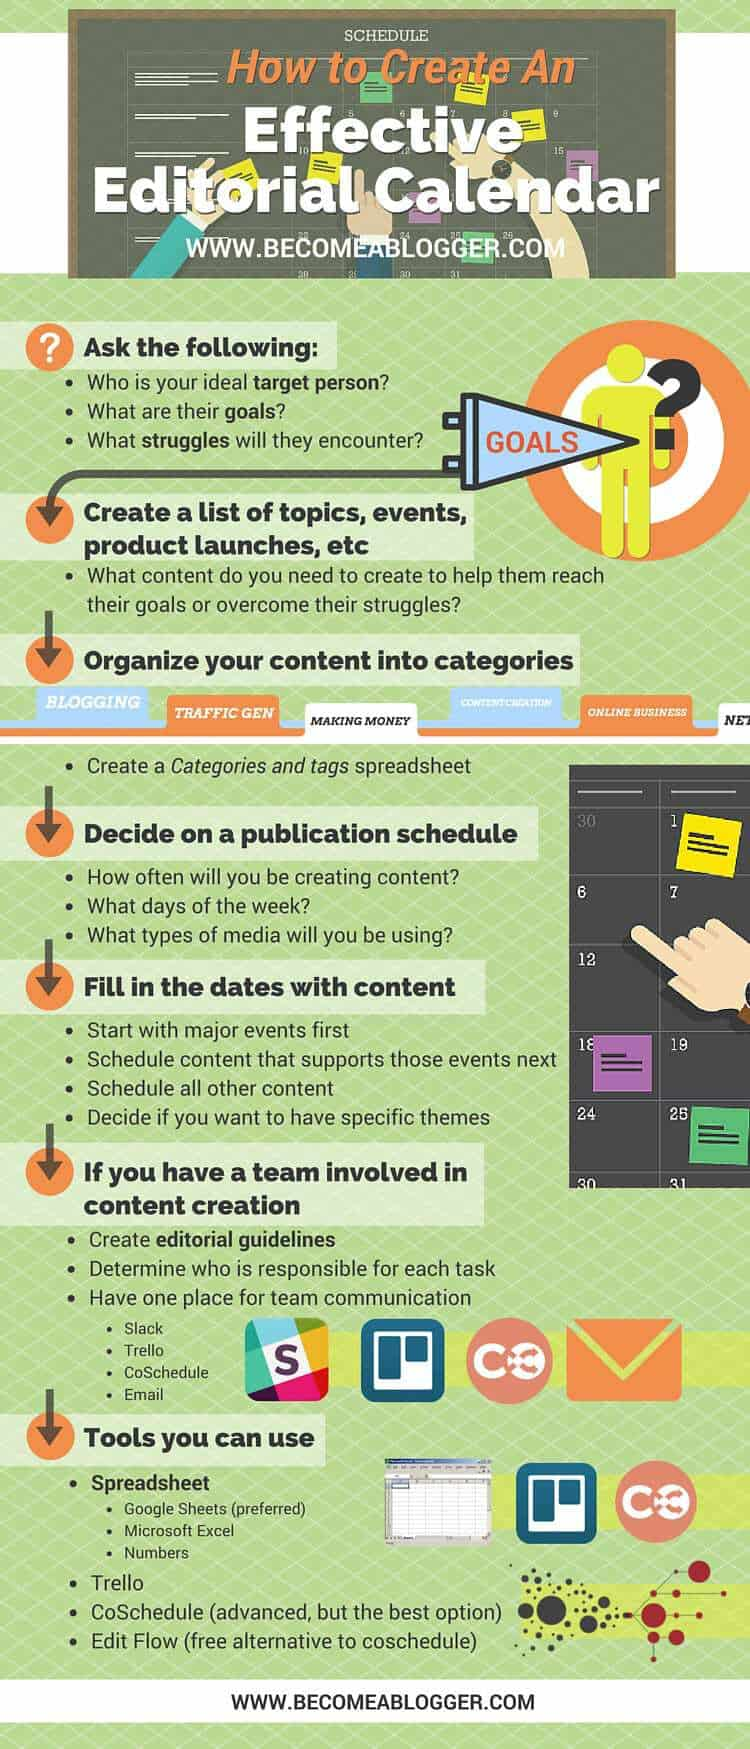 For more details on the how-to's of crafting an effective editorial calendar, check out this awesome infographic.